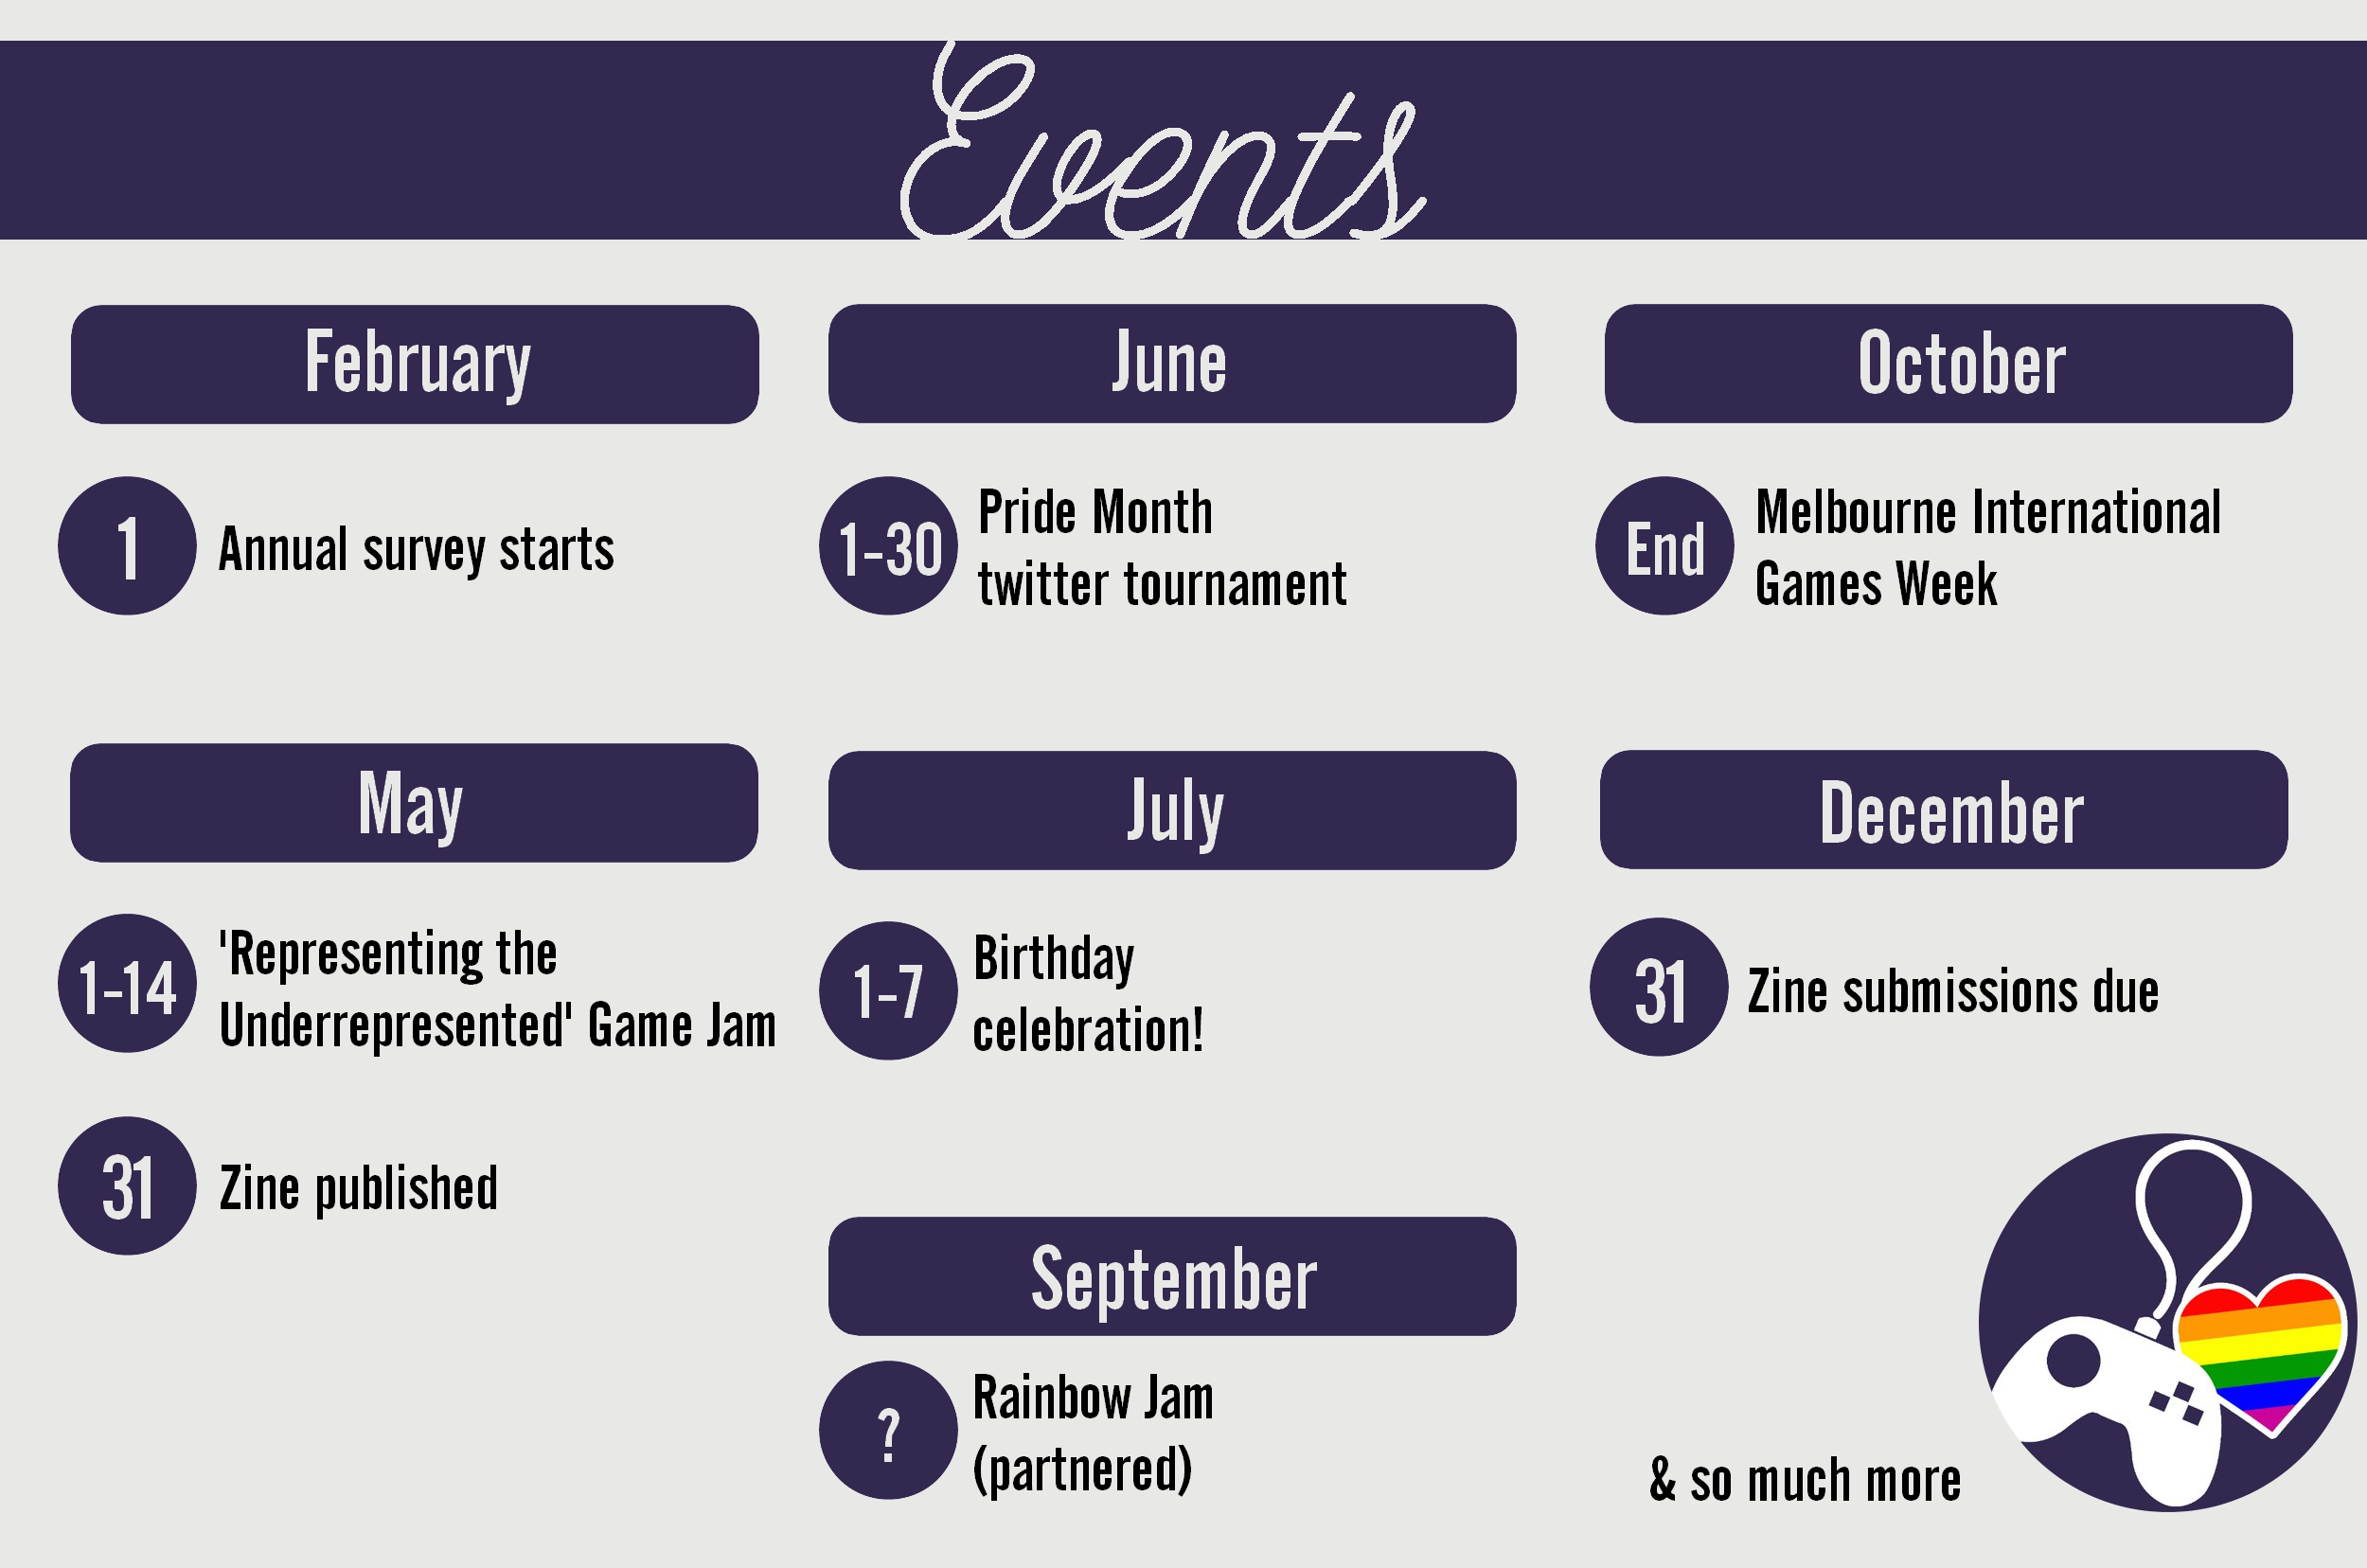 Image representation of the events we hold each year, listed below.